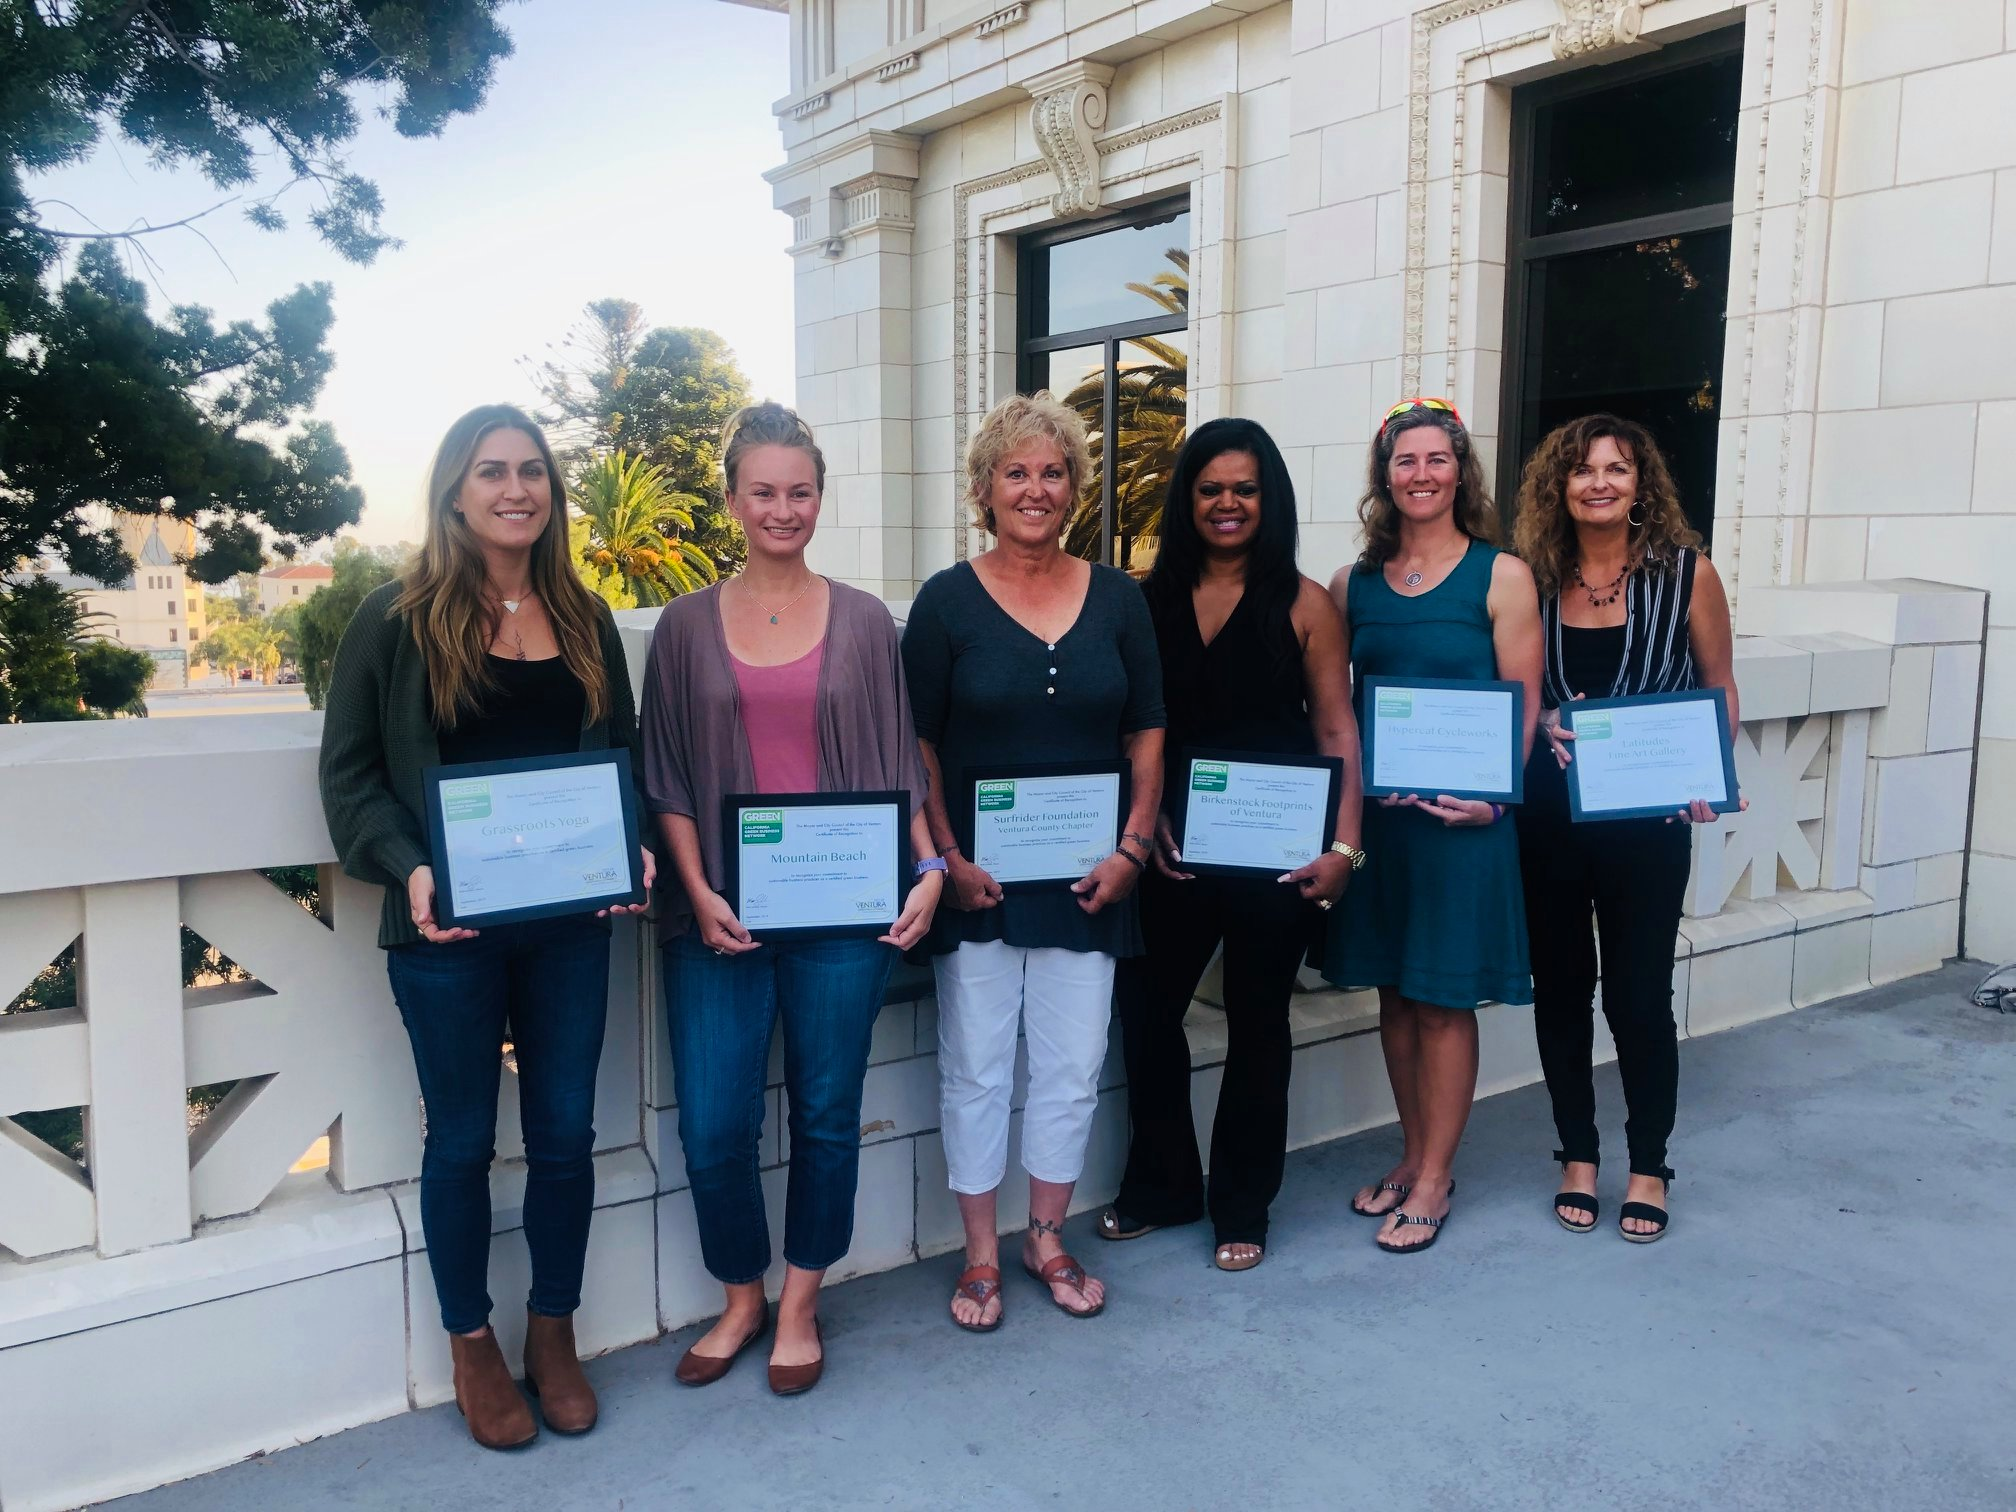 Six business owners holding Green Business certificates outside City Hall in Ventura.